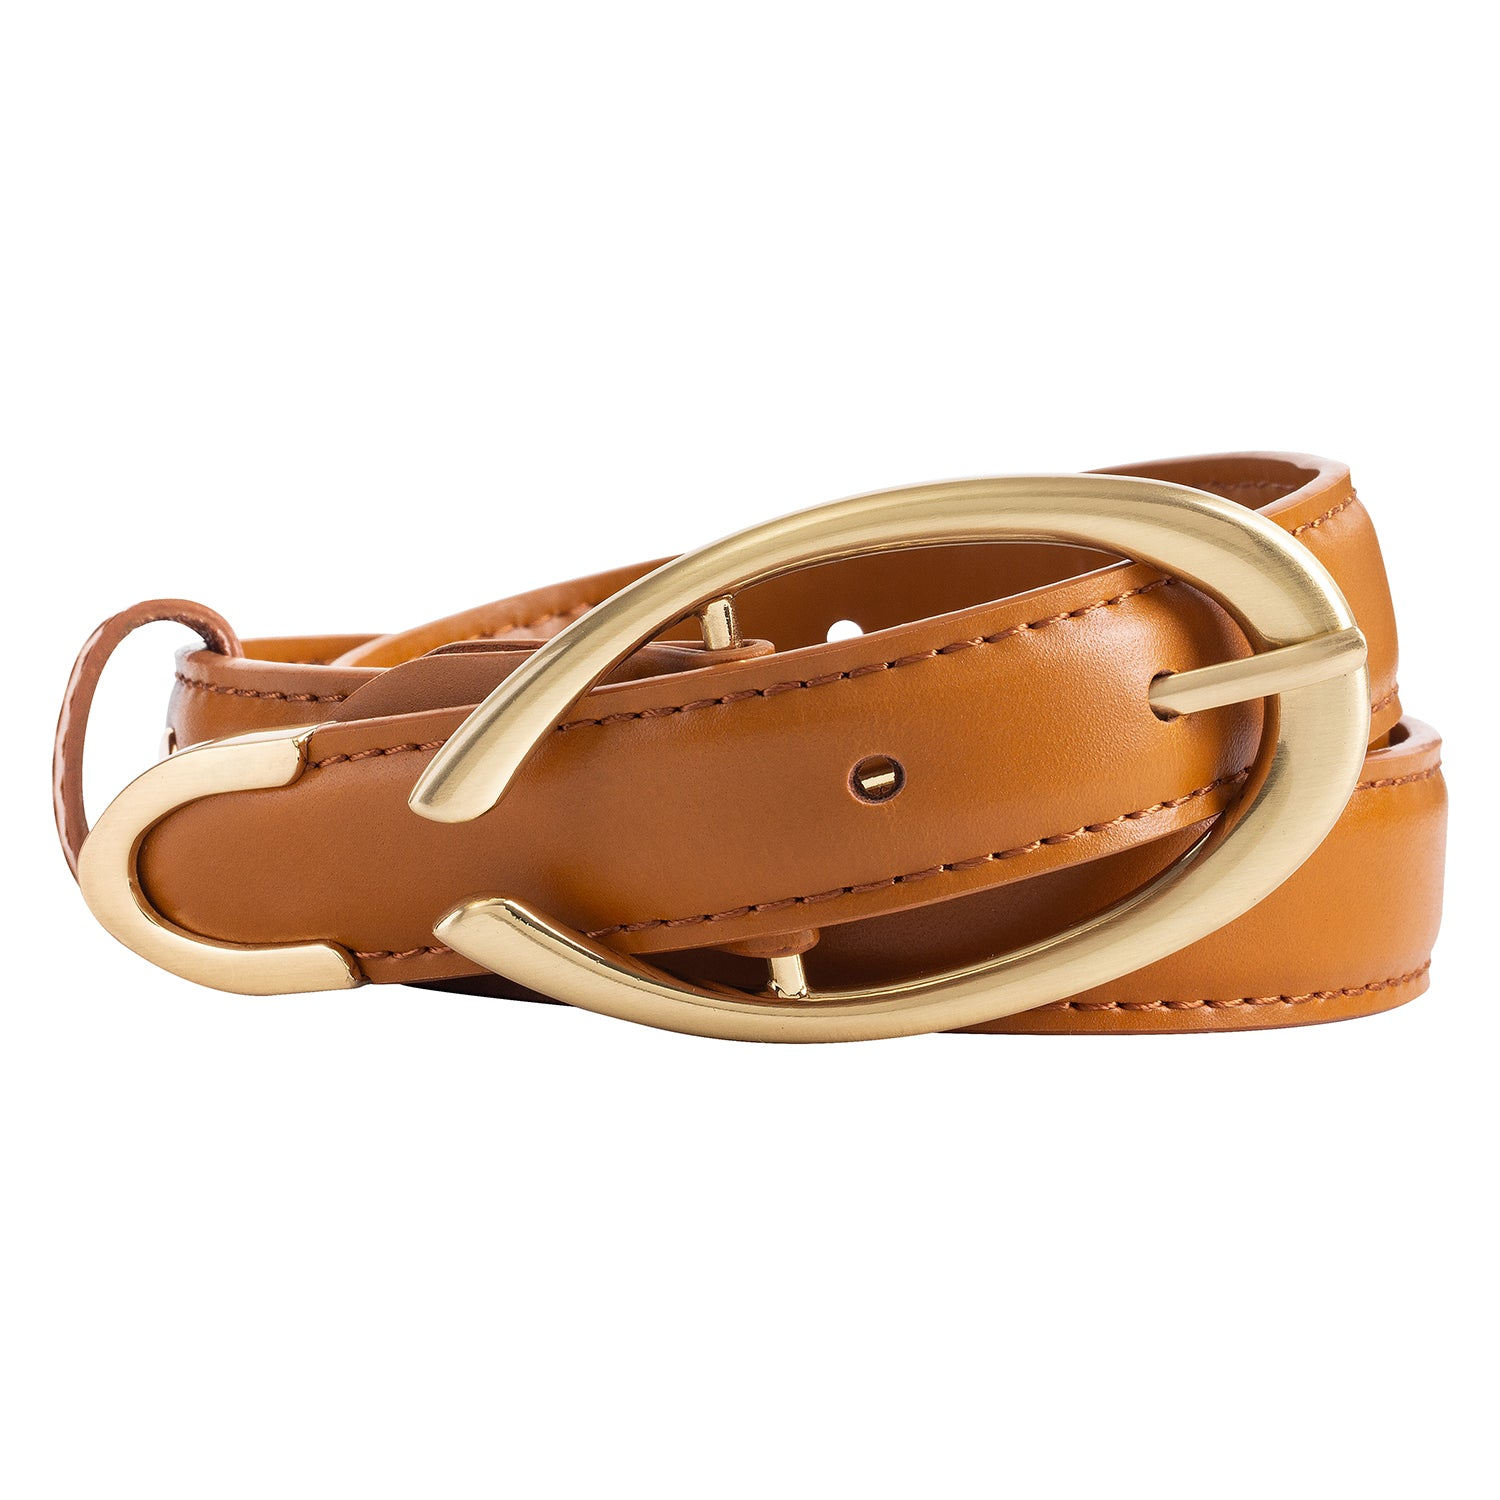 THE FLORETTE BELT